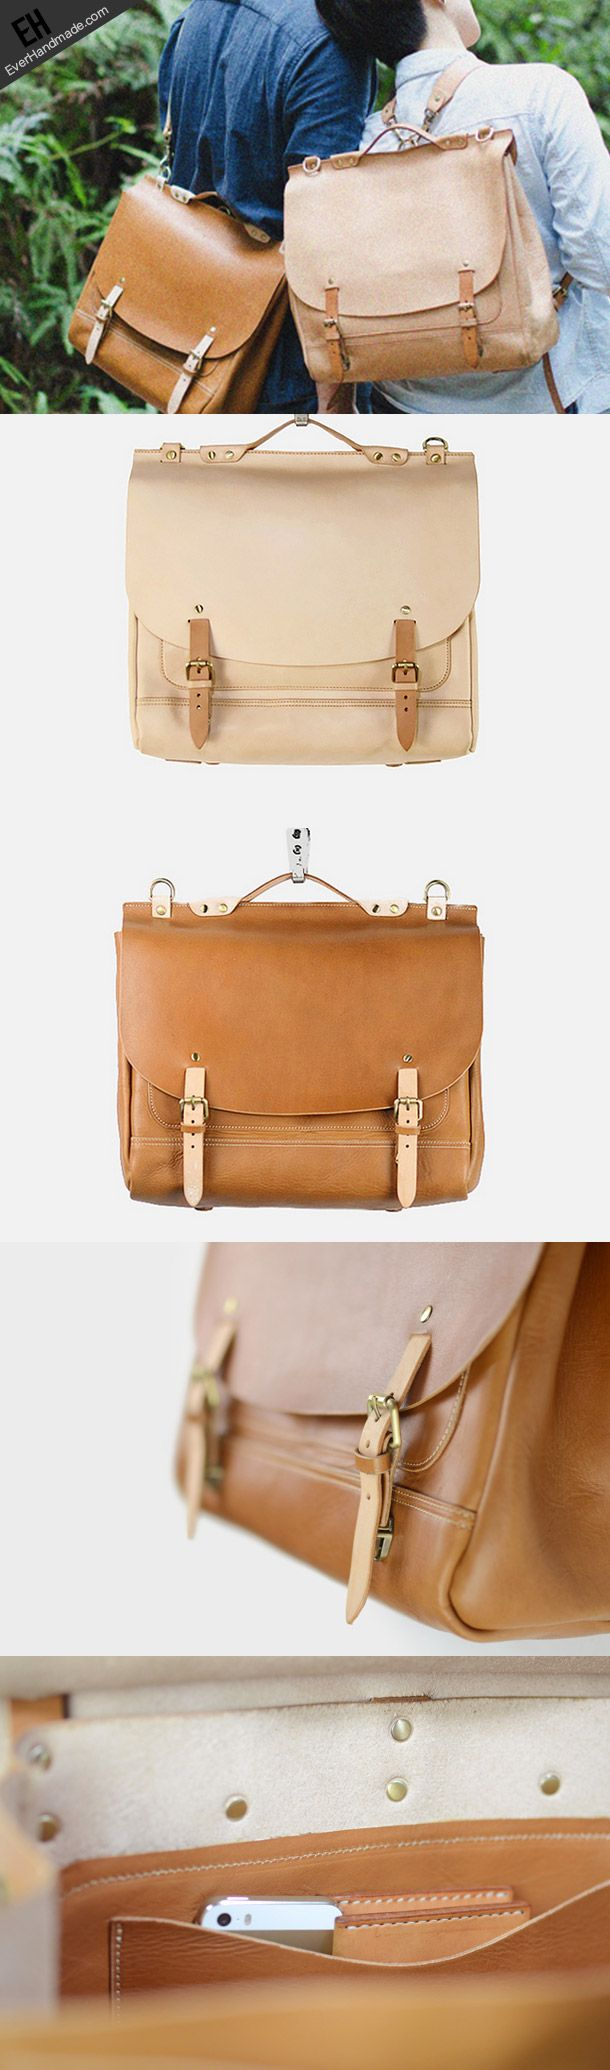 Handmade leather backpack messenger bag  for women men